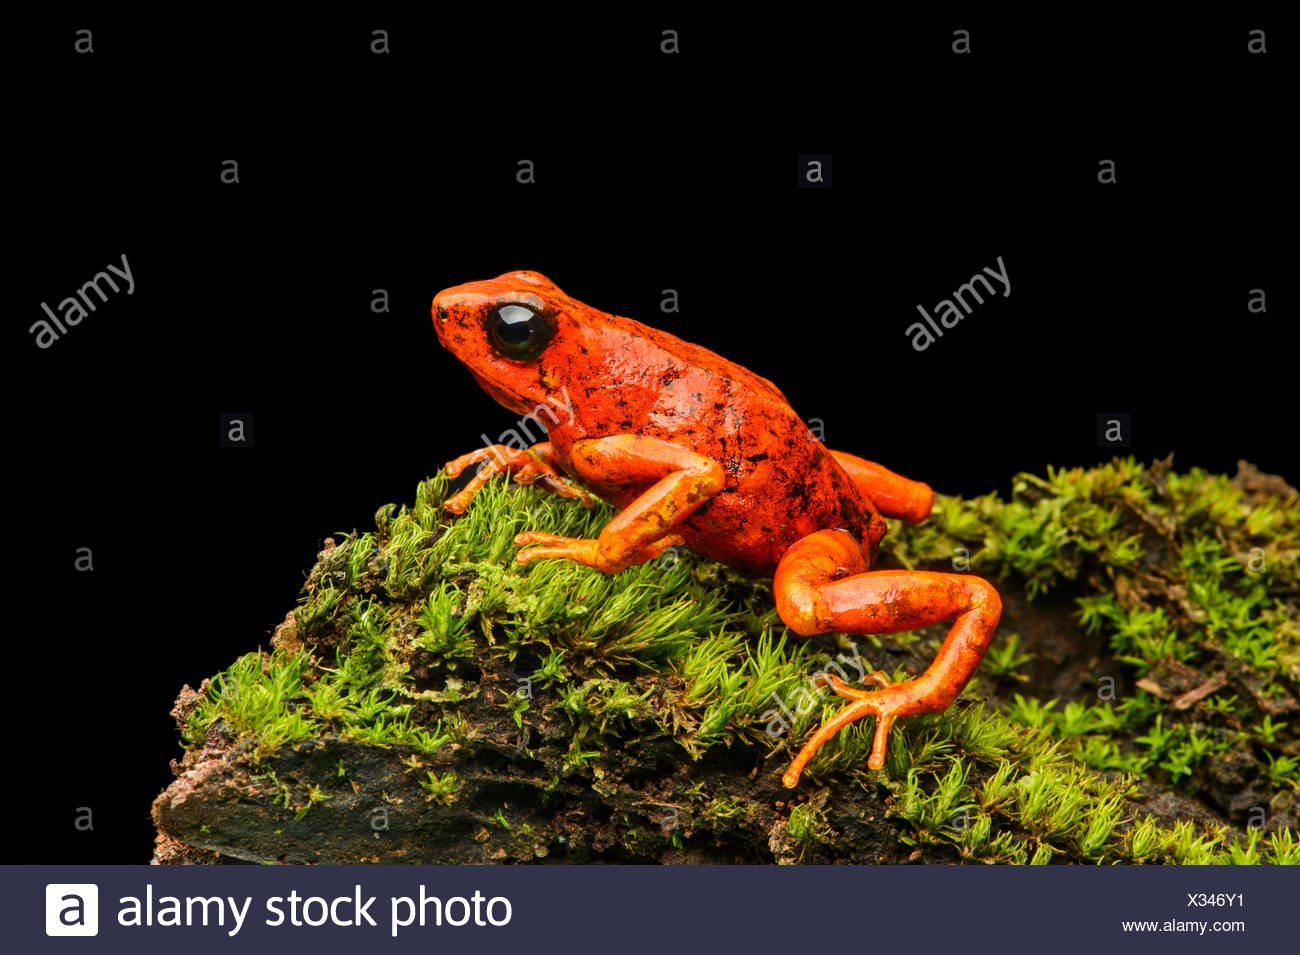 Little-devil poison frog or diablito (Oophaga sylvatica) on moss, Chocó rainforest, Ecuador - Stock Image